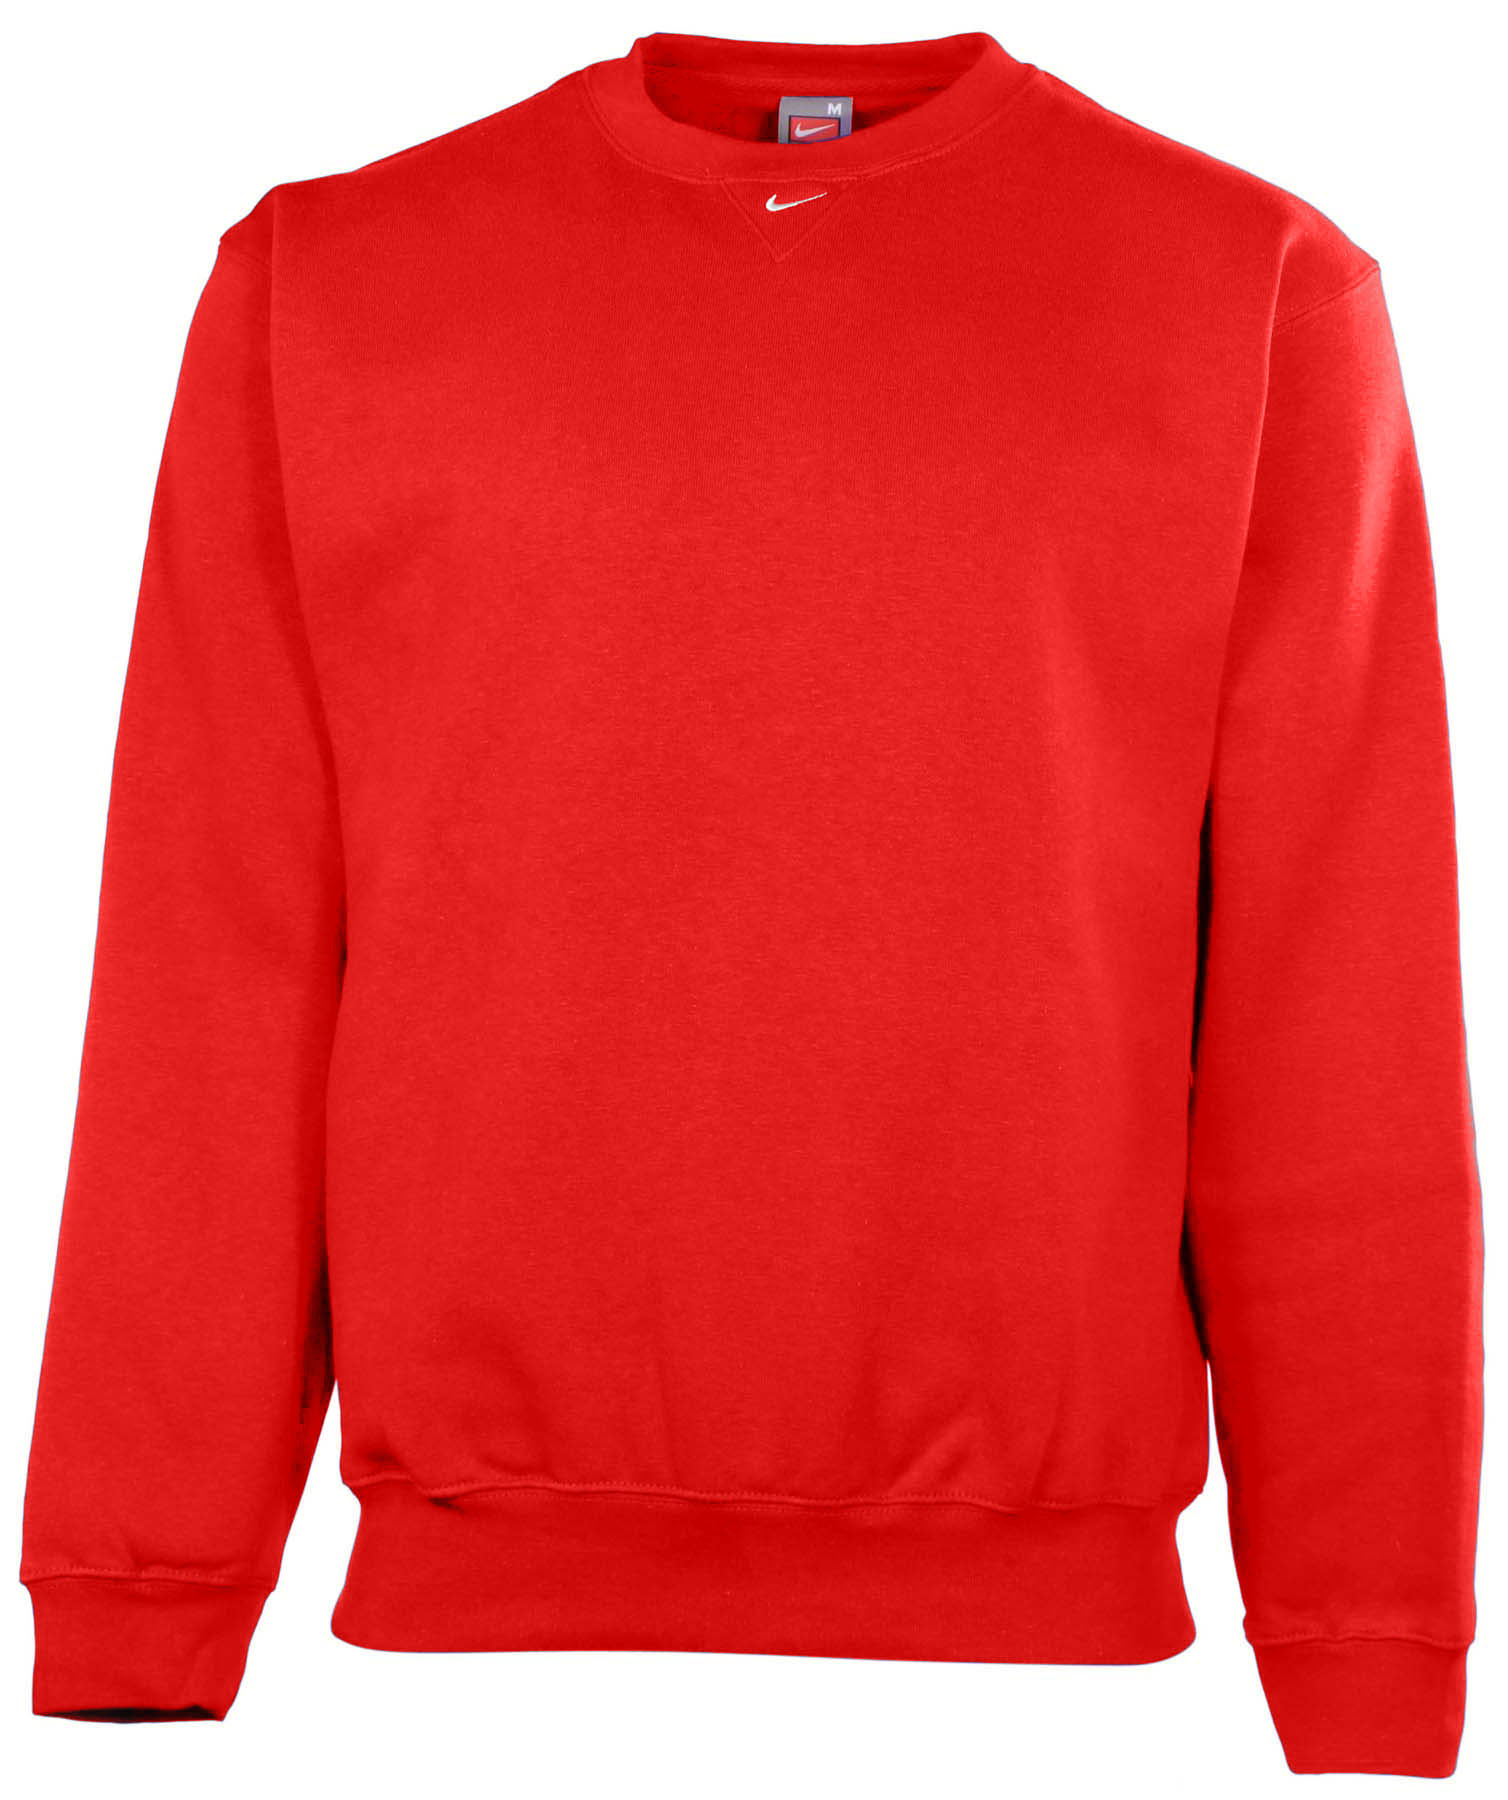 Nike Men's Team Crew Neck Fleece Pullover Sweatshirt | eBay